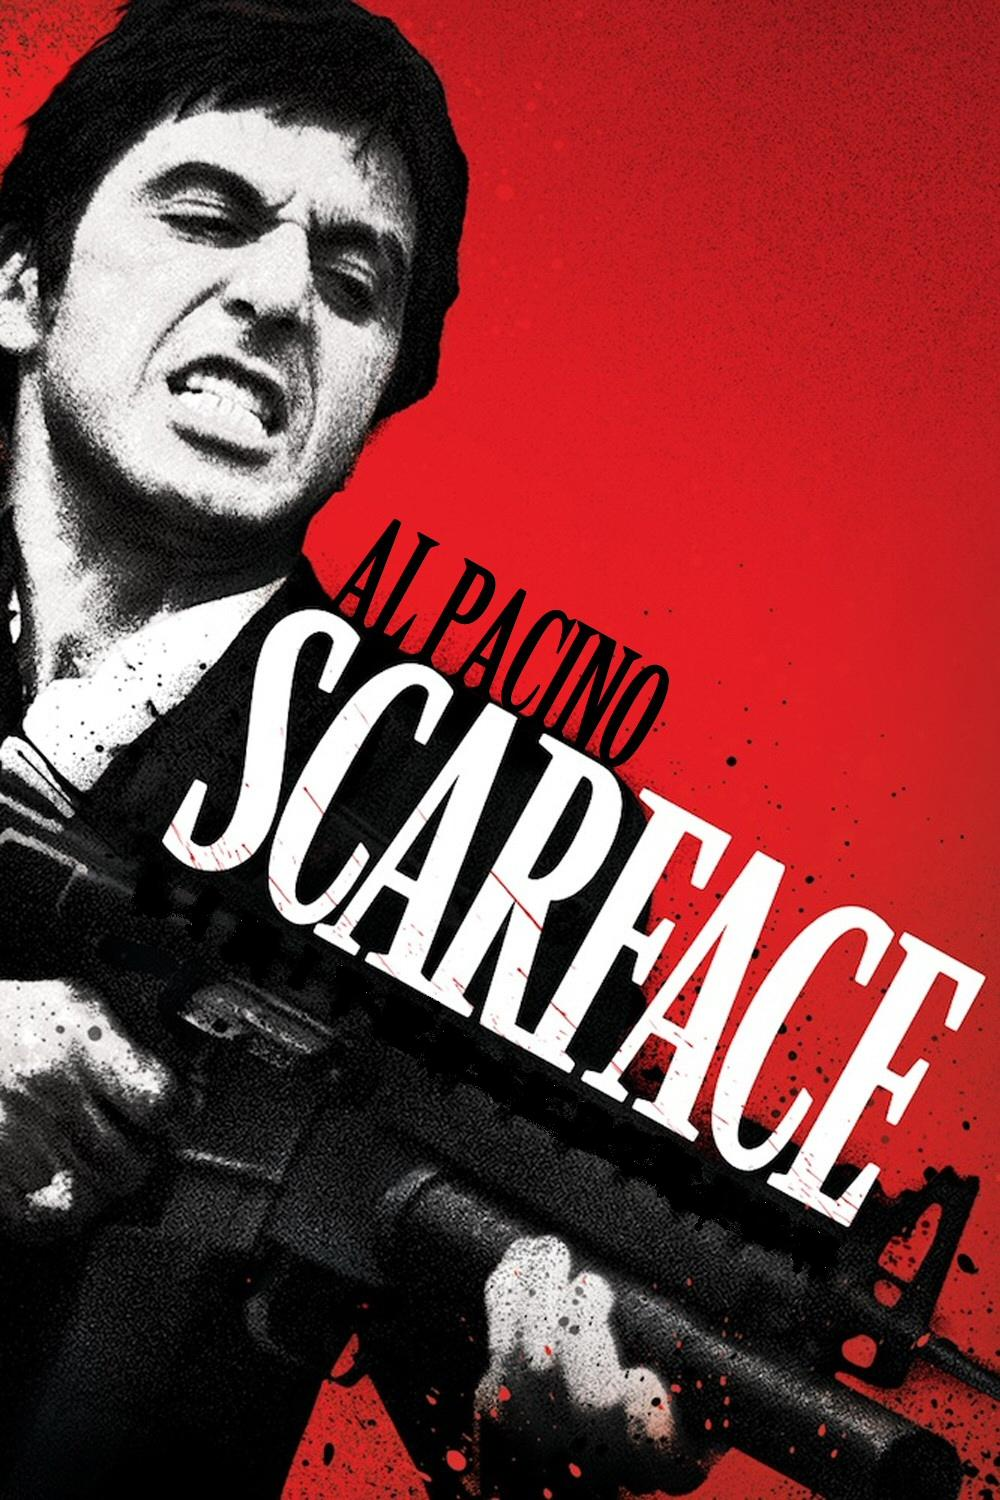 an analysis of the movie scarface Antonio tony raimundo montana is the main protagonist of scarface and the video game scarface - the world is yours he was portrayed by al pacino in the movie and voiced by andré sogliuzzo in the game tony montana has become a cultural icon and is one of the most famous movie characters of.